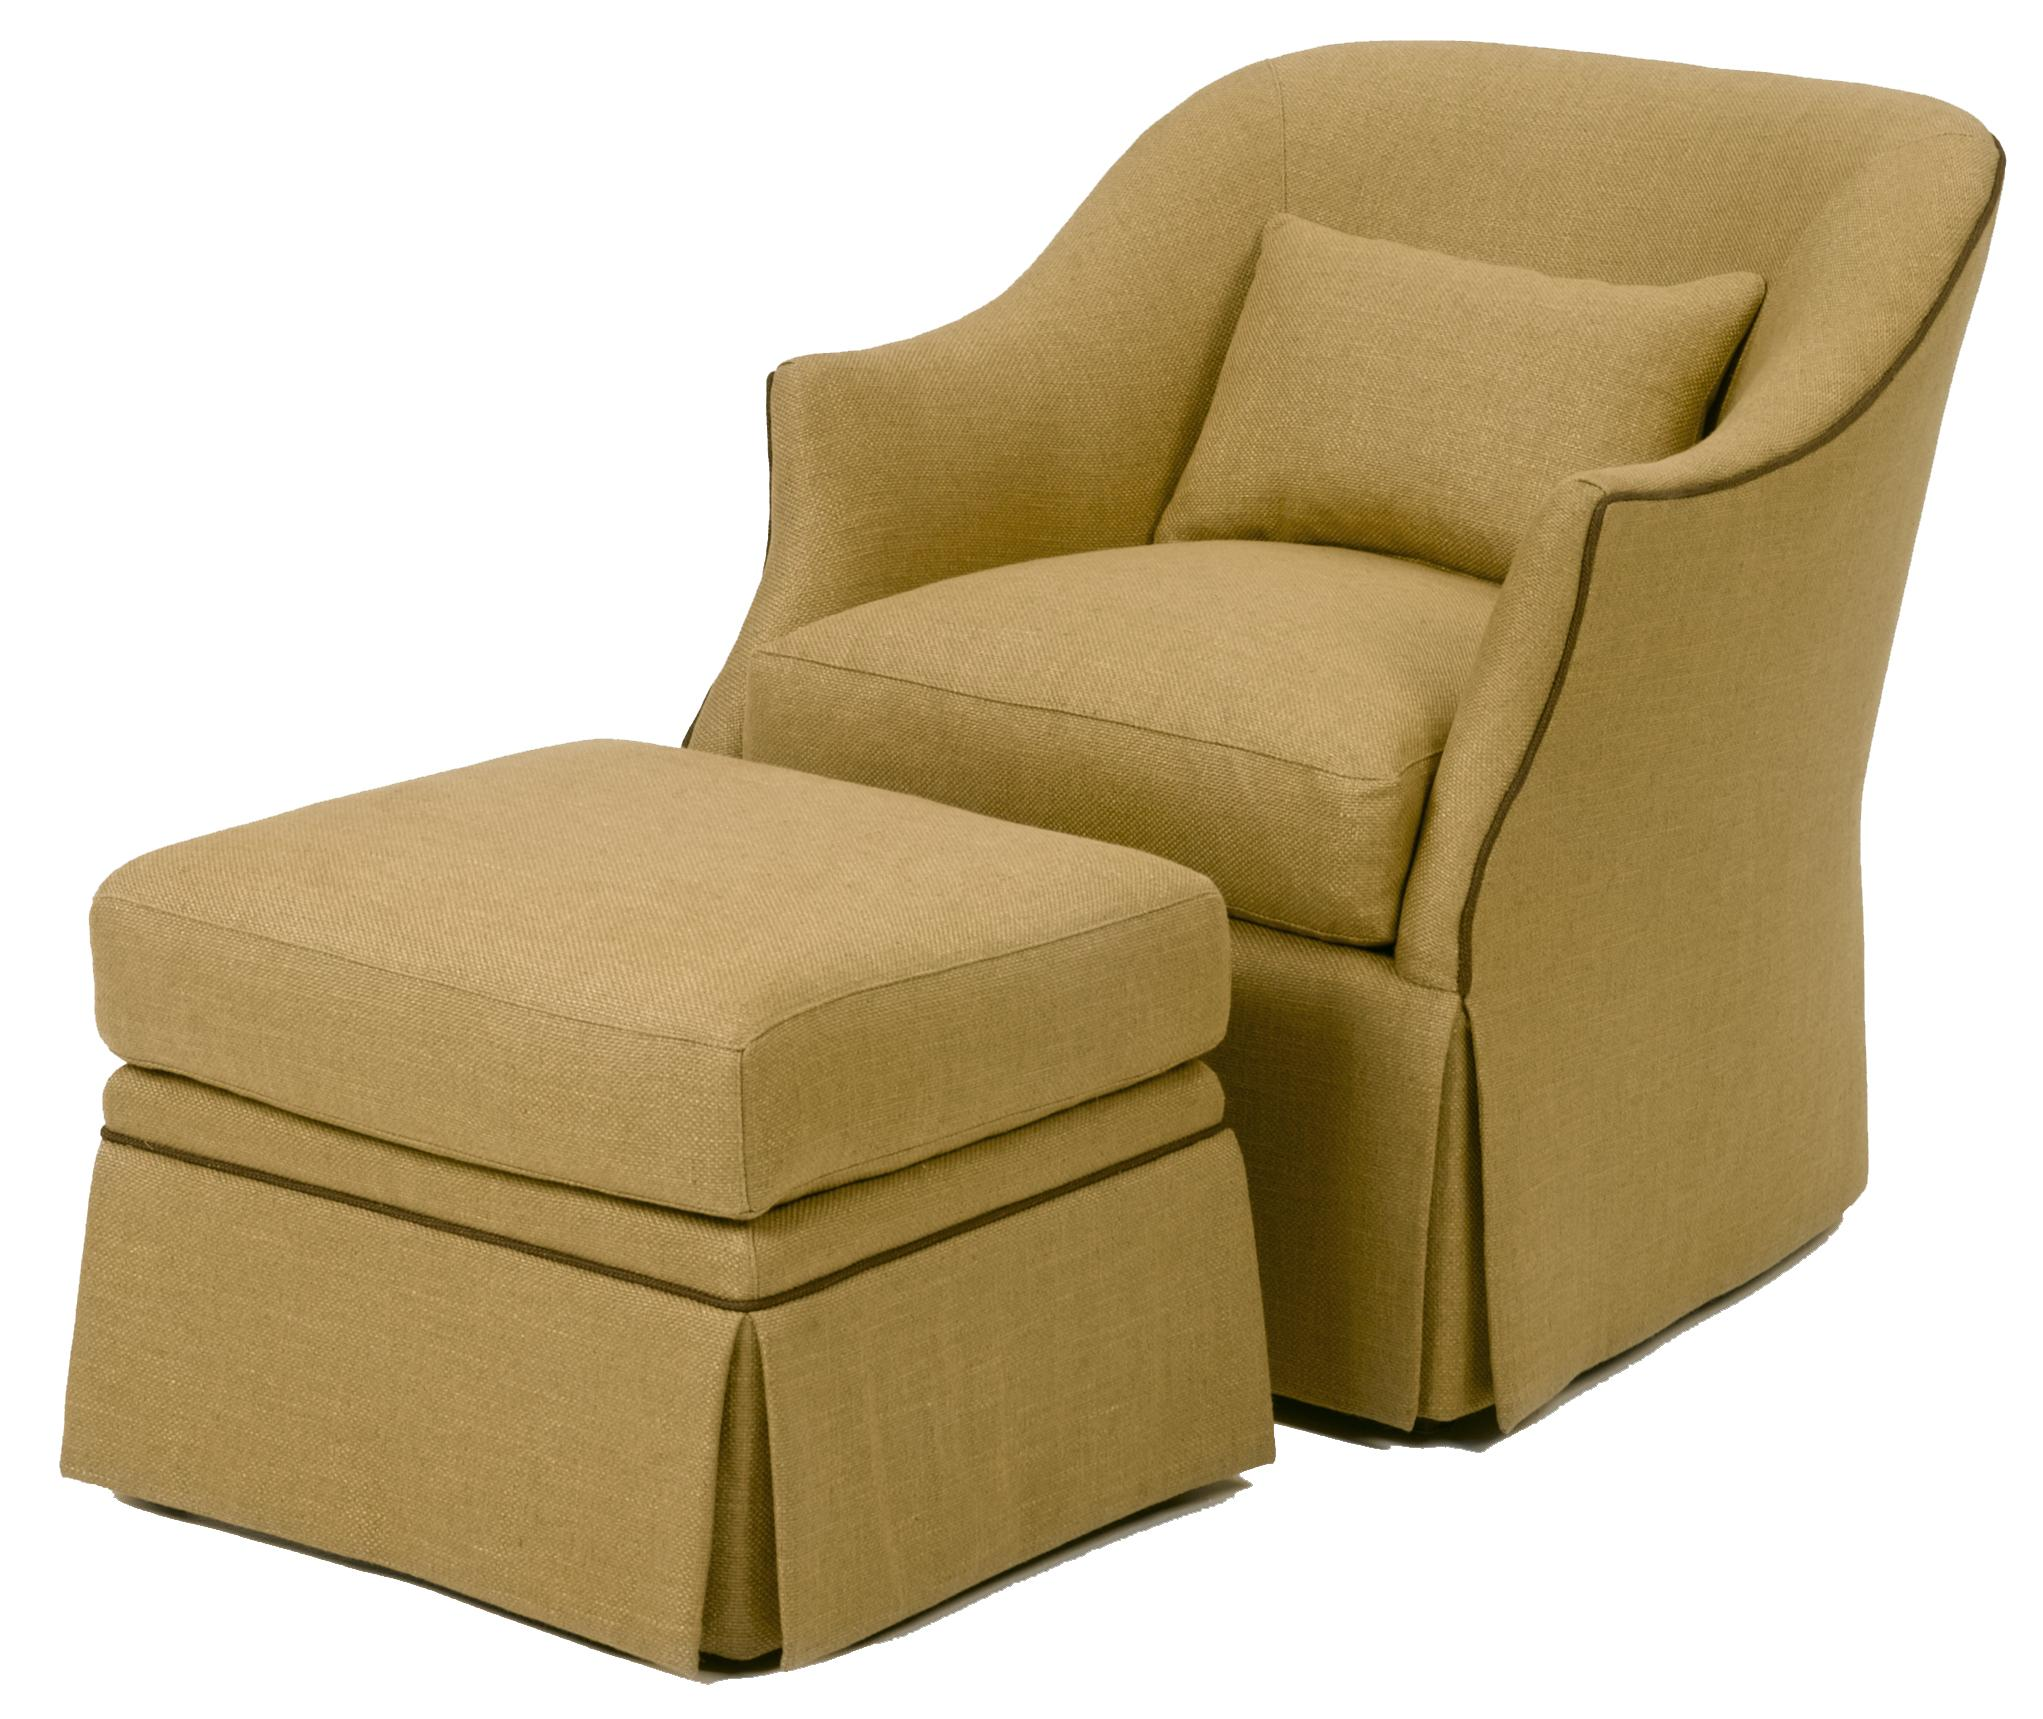 Accent Chairs and Ottomans Upholstered Chair and Ottoman by Wesley Hall at Malouf Furniture Co.